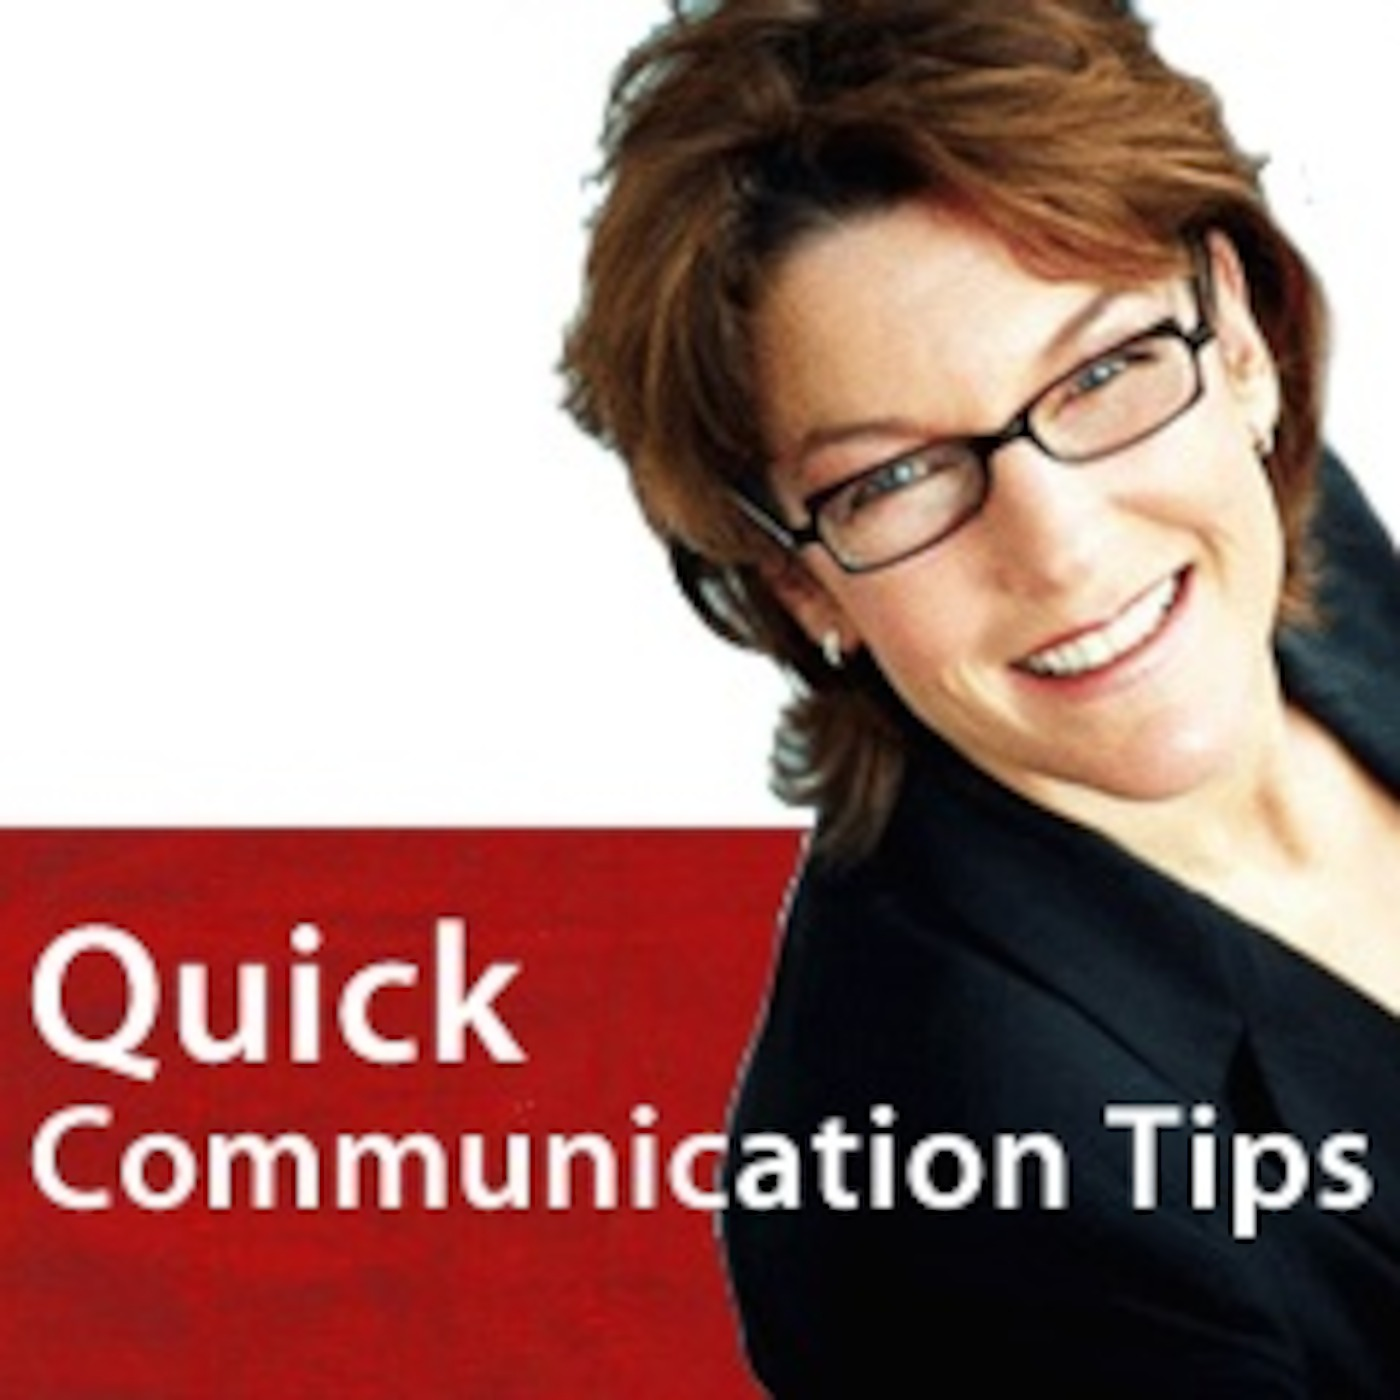 Quick Communication Tips